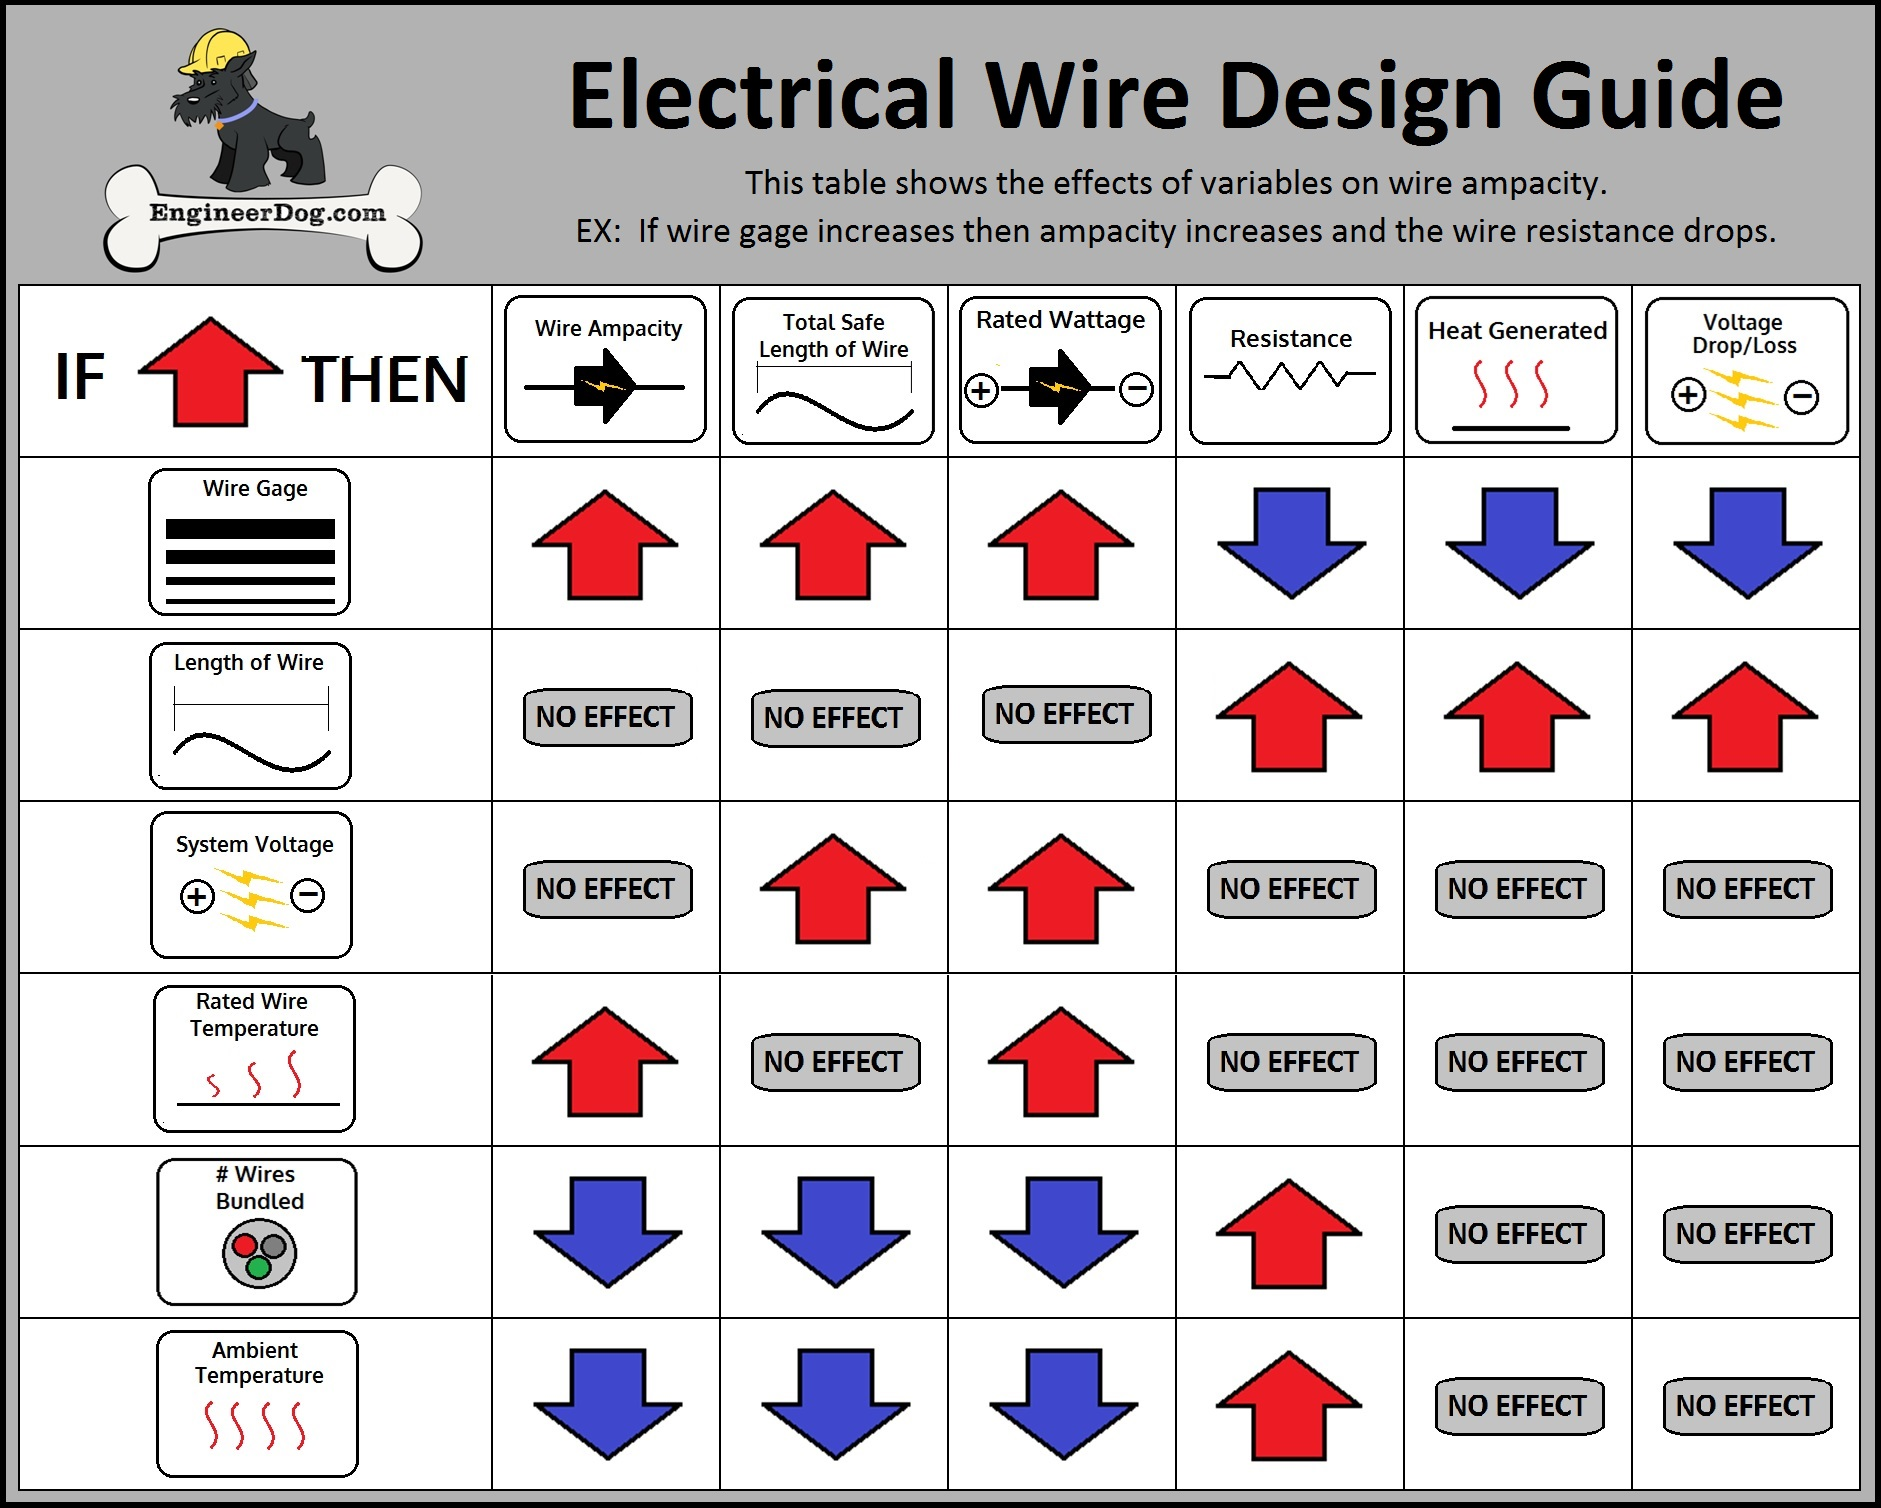 Wiring gauge guide wiring diagram for light switch free electrical wire gauge sizing calculator engineerdog rh engineerdog com vape wire gauge guide speaker wire keyboard keysfo Images